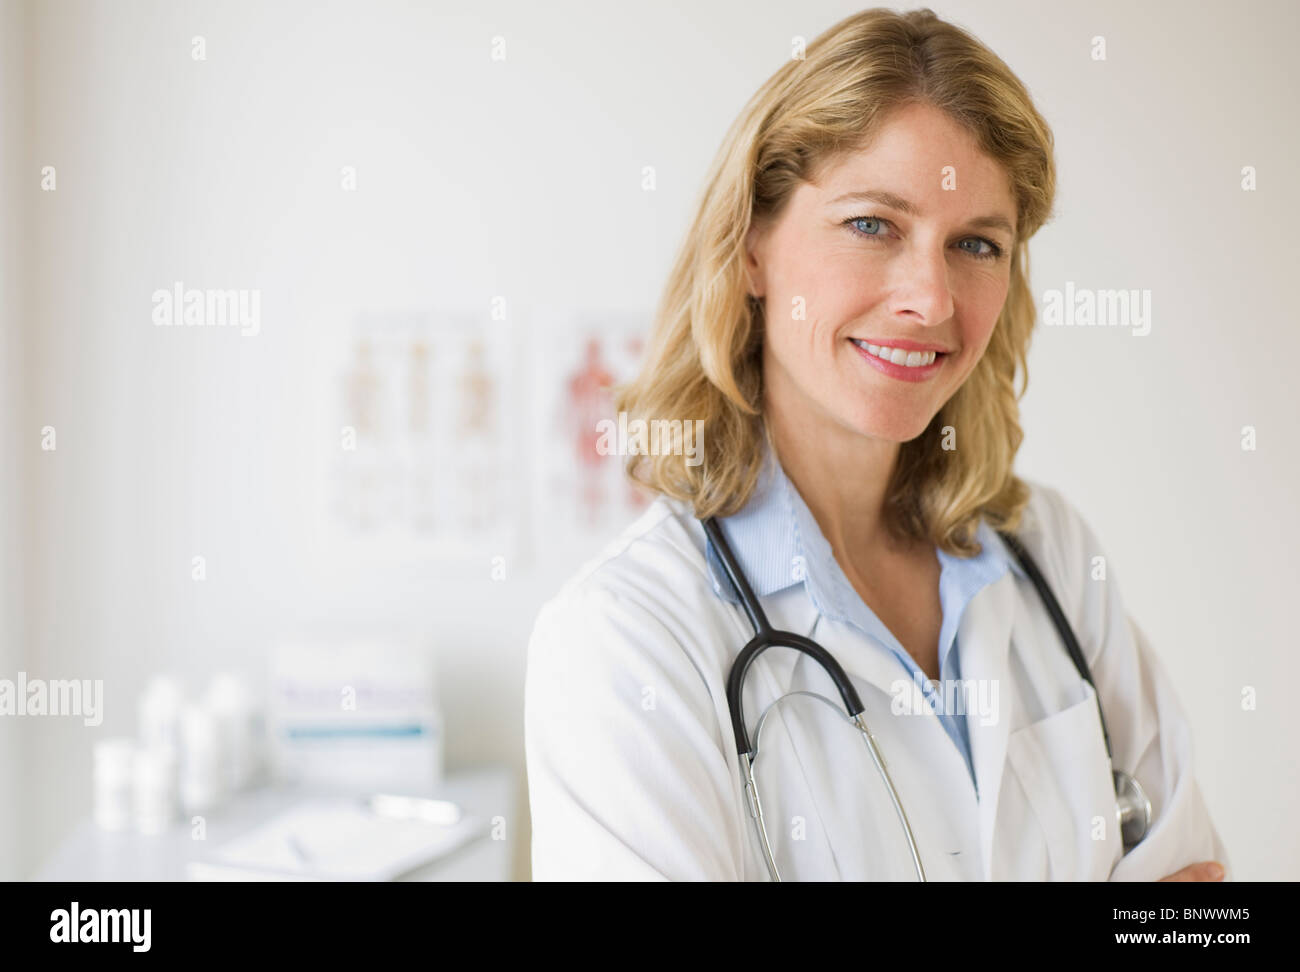 Female doctor in her office - Stock Image